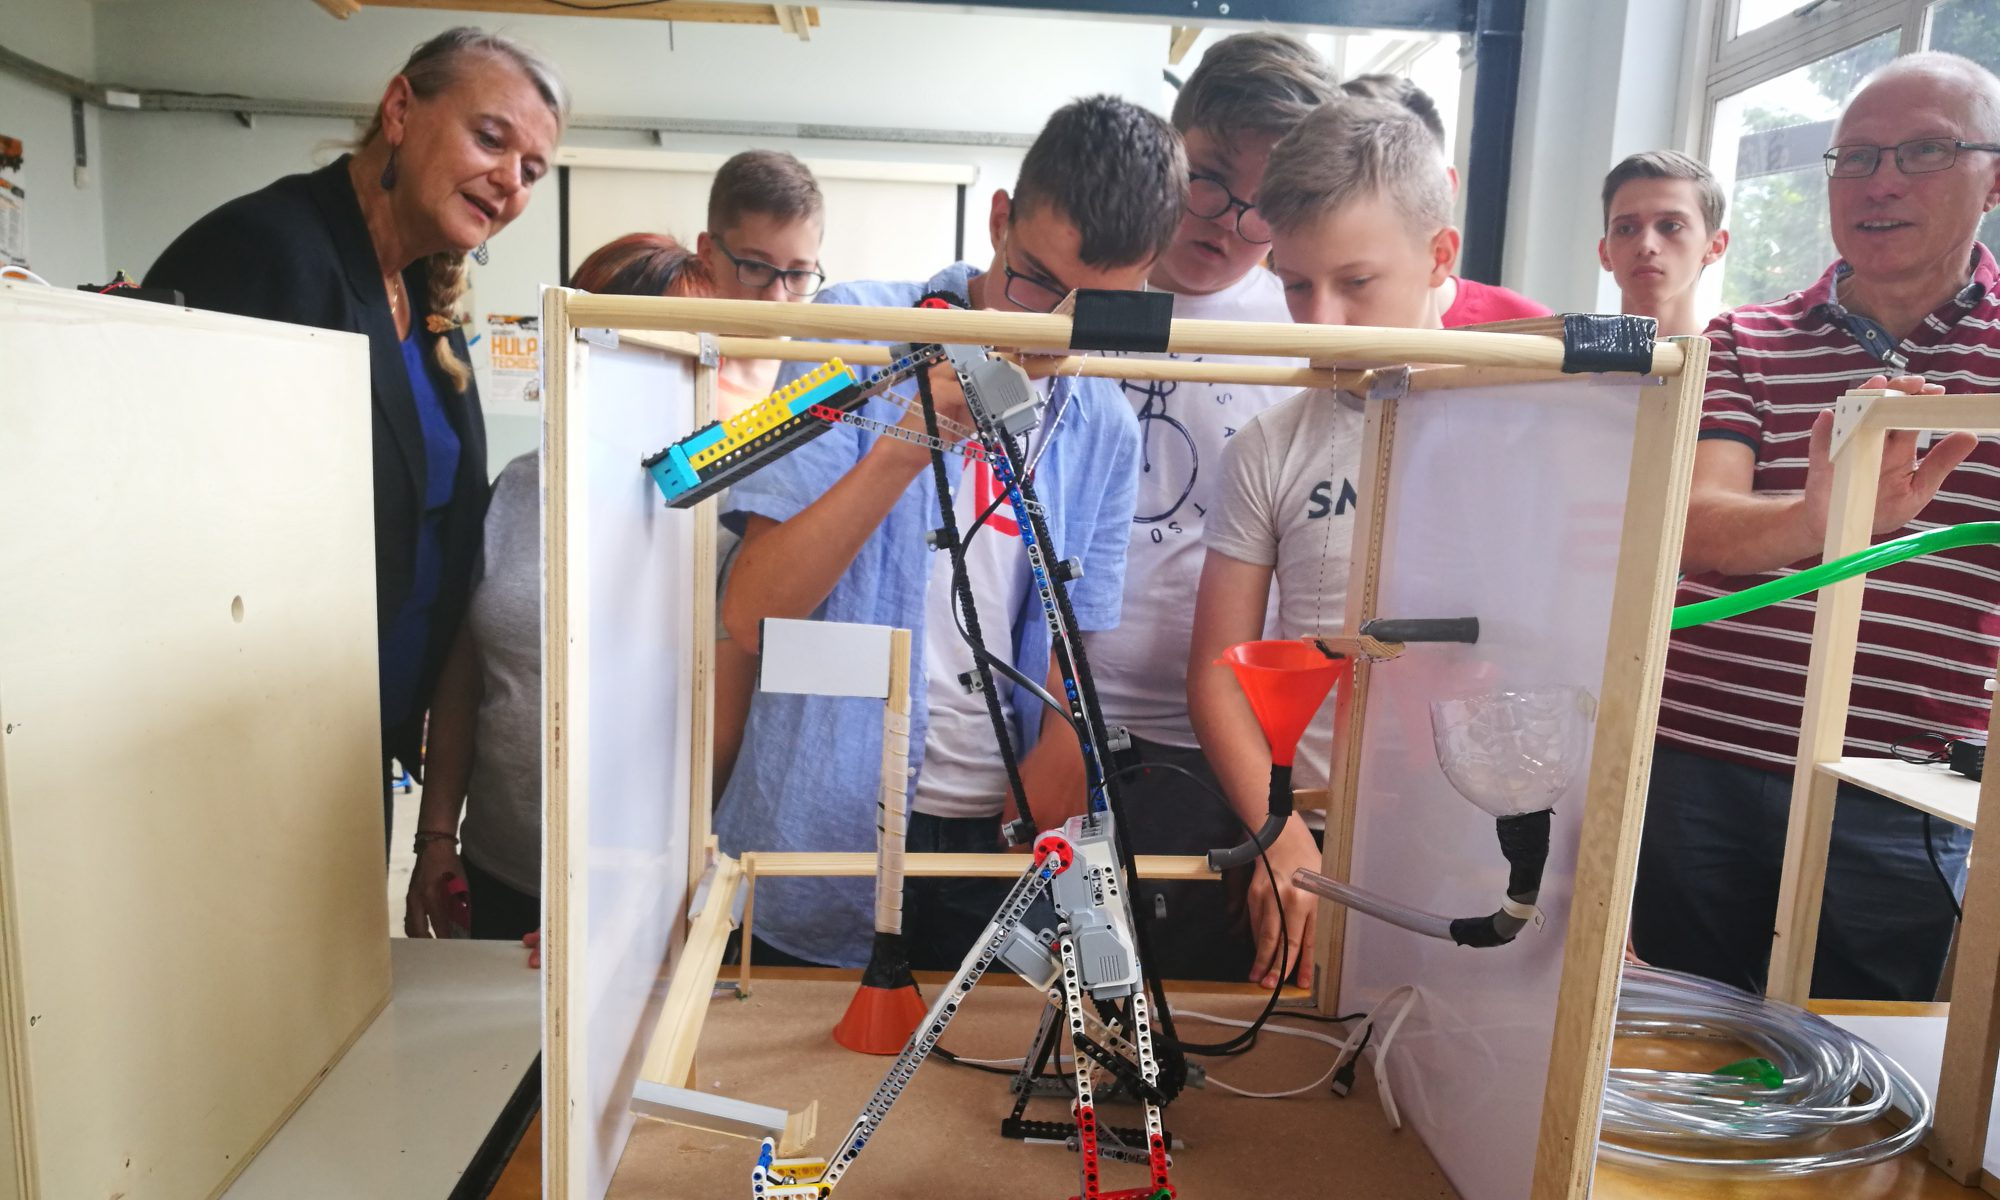 HOW TO RAISE AN INVENTOR. TECHNOLOGY AND ENGINEERING LEARNING MATERIAL FOR SCHOOLS